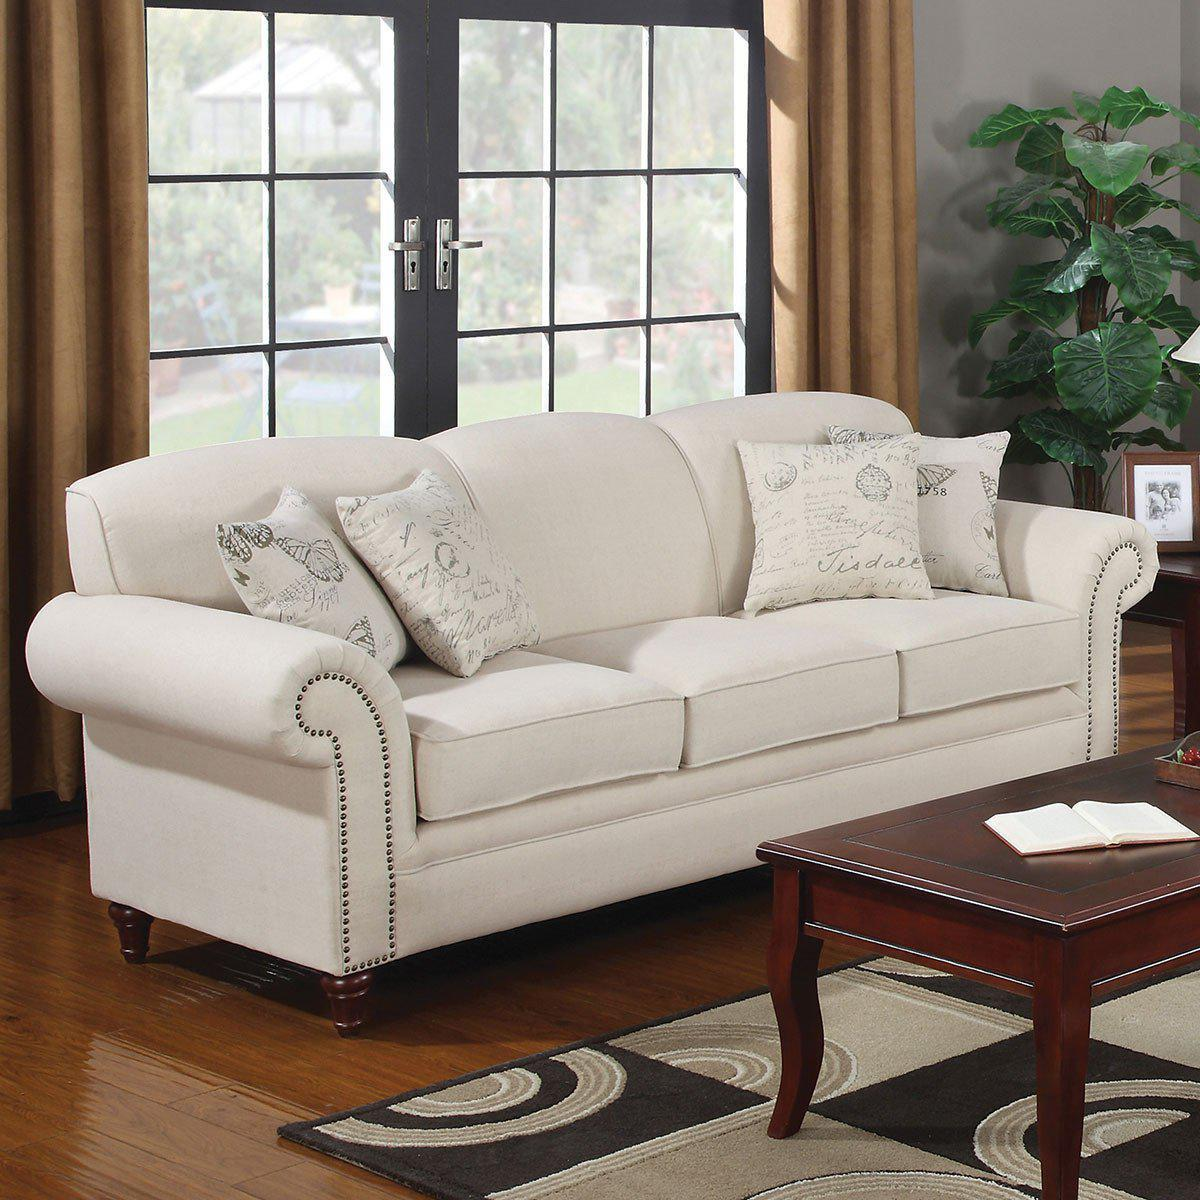 Norah Sofa-sofas-Jennifer Furniture